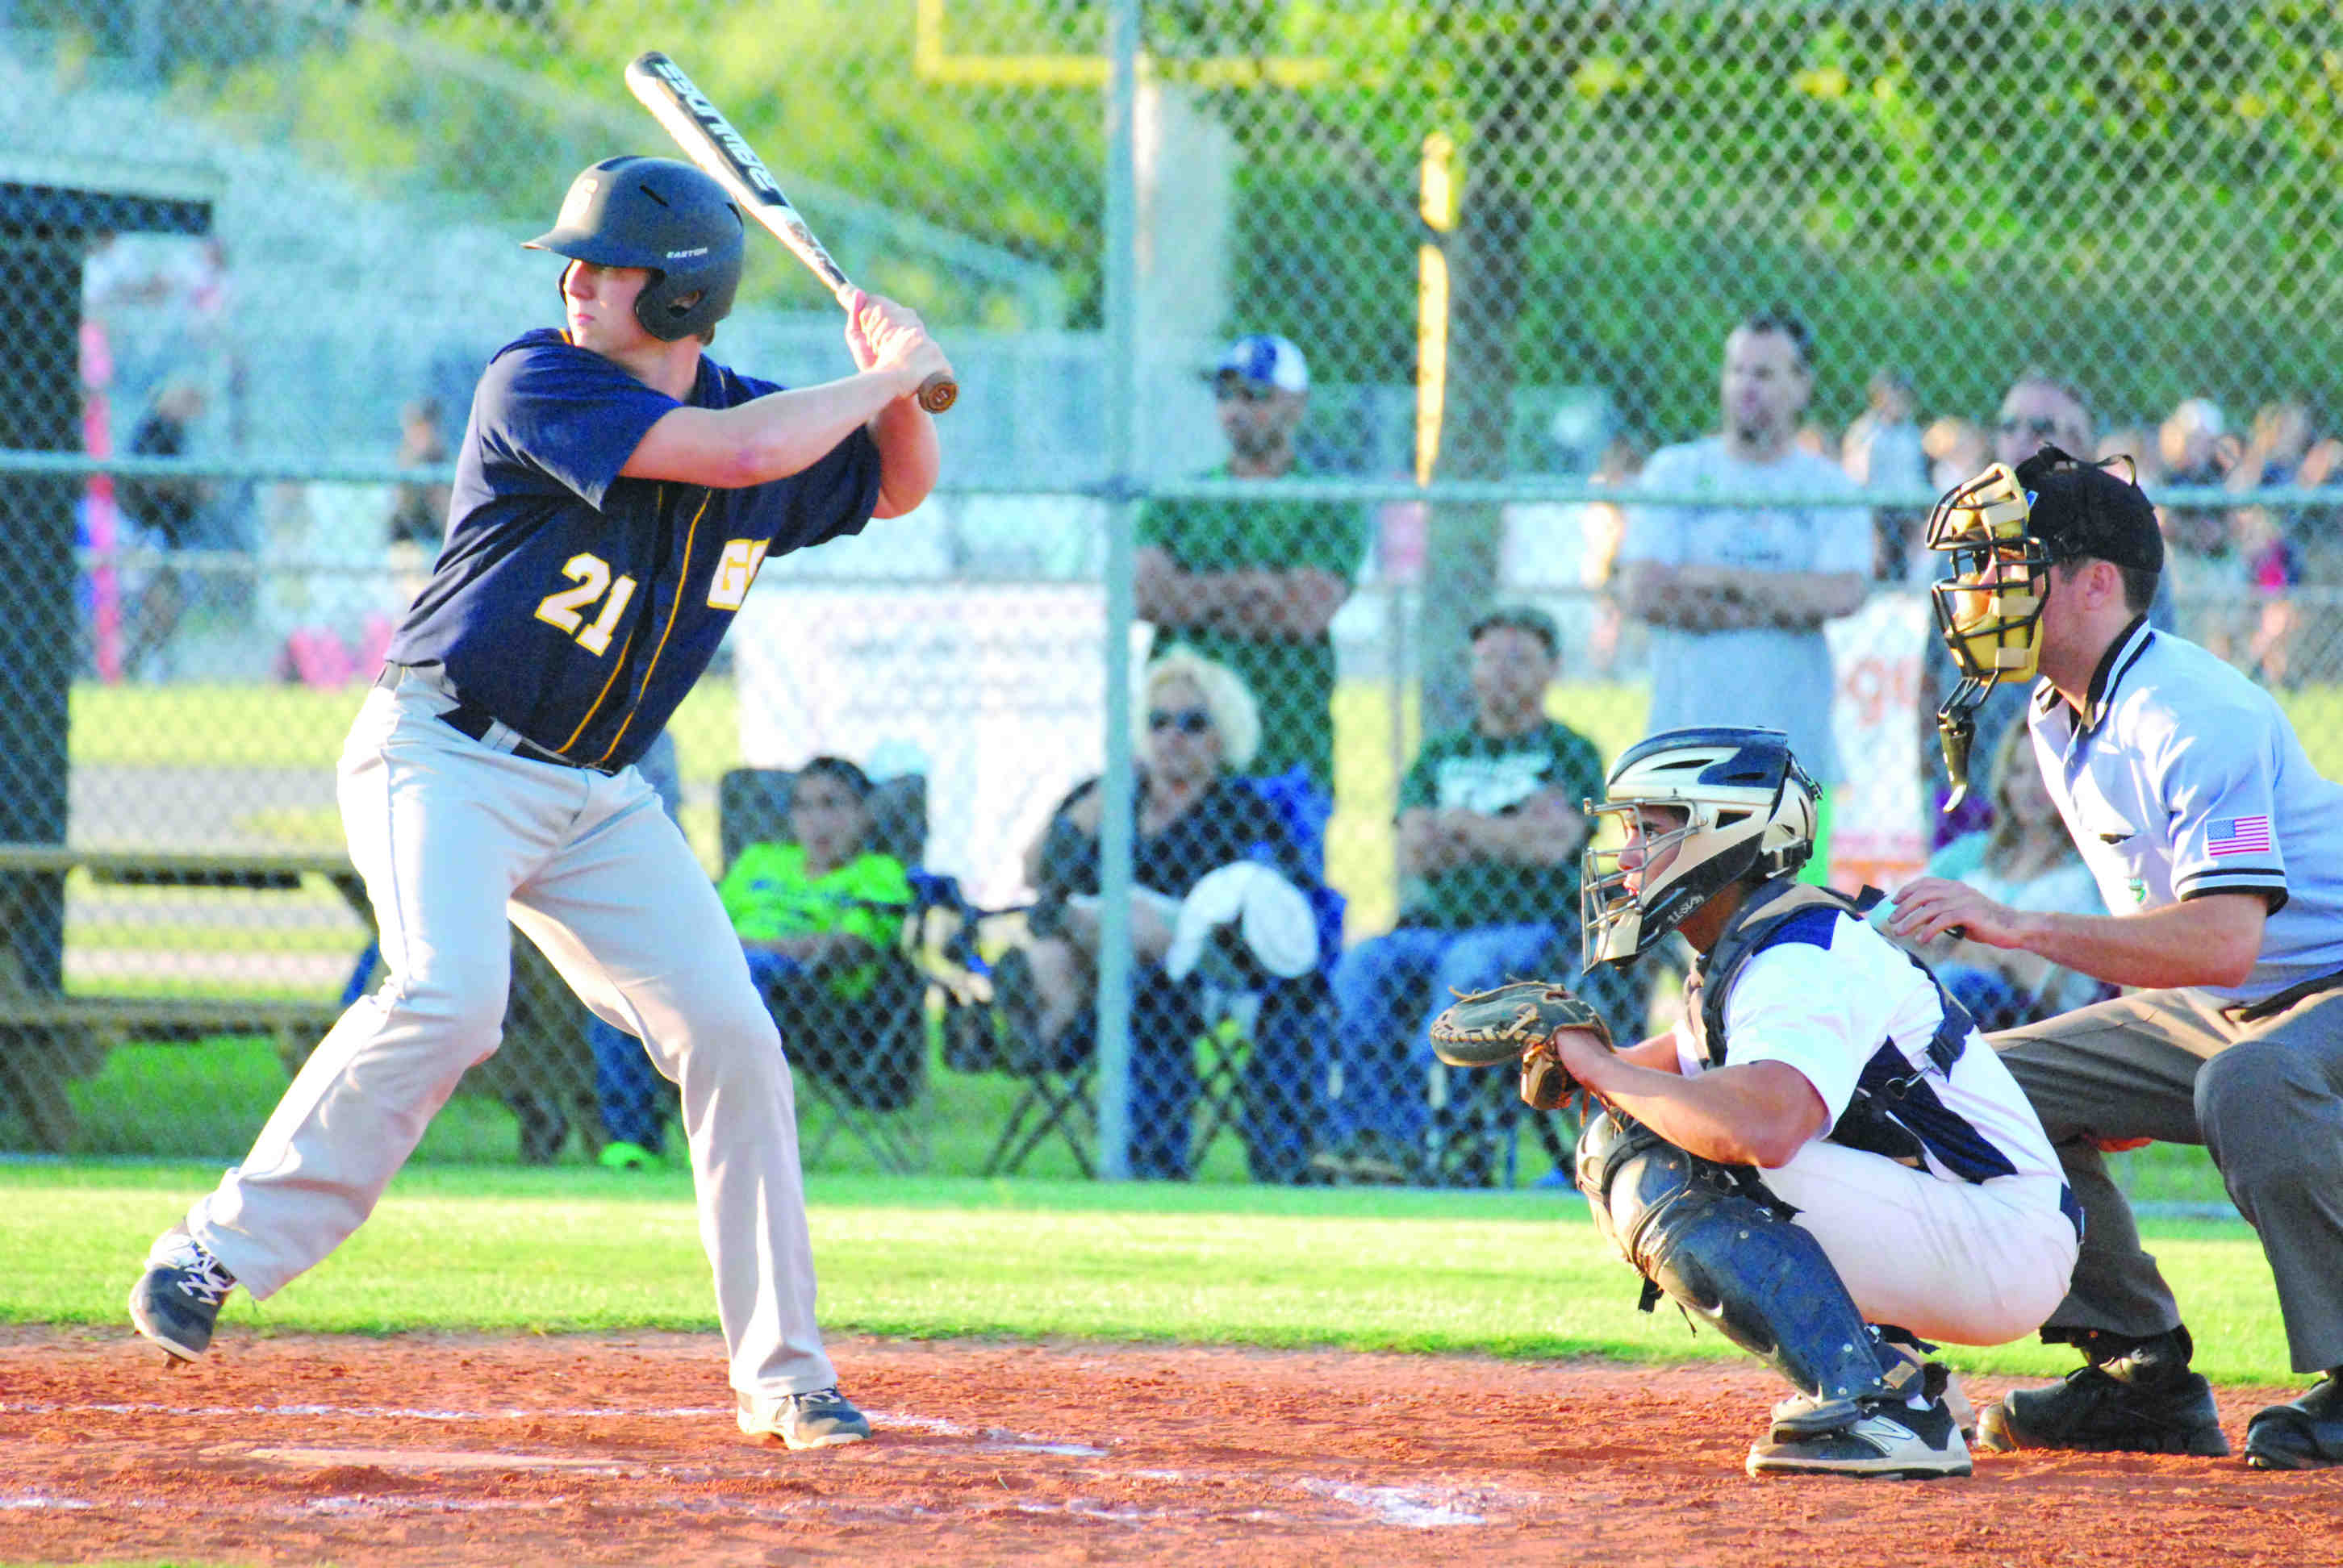 steinbrenner adds on another district title